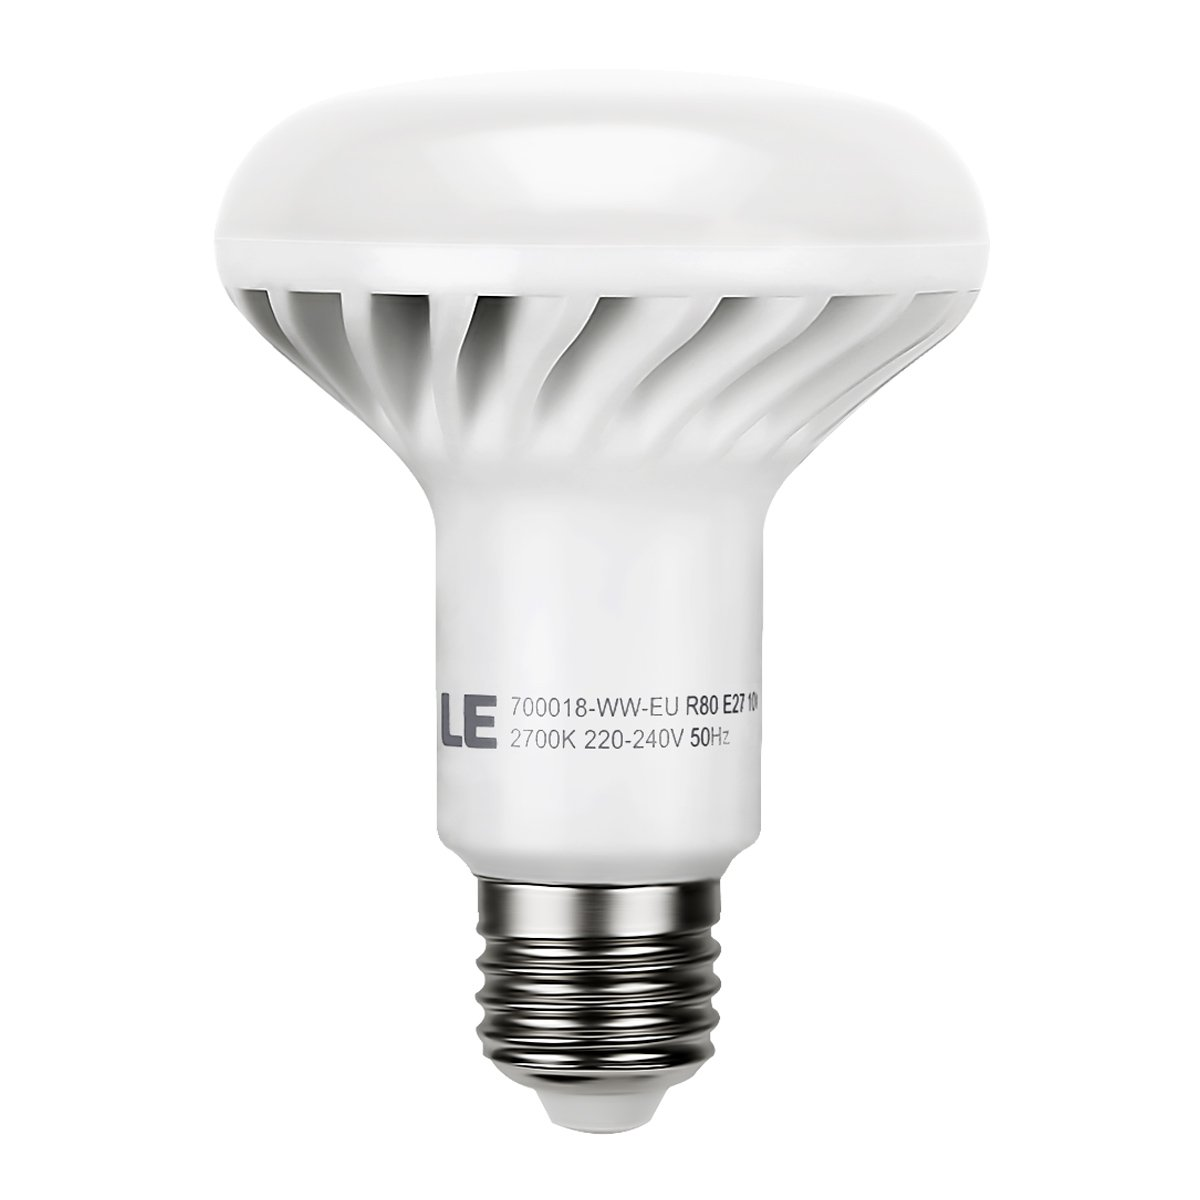 le 10w r80 e27 led bulbs 60w incandescent bulbs equivalent. Black Bedroom Furniture Sets. Home Design Ideas